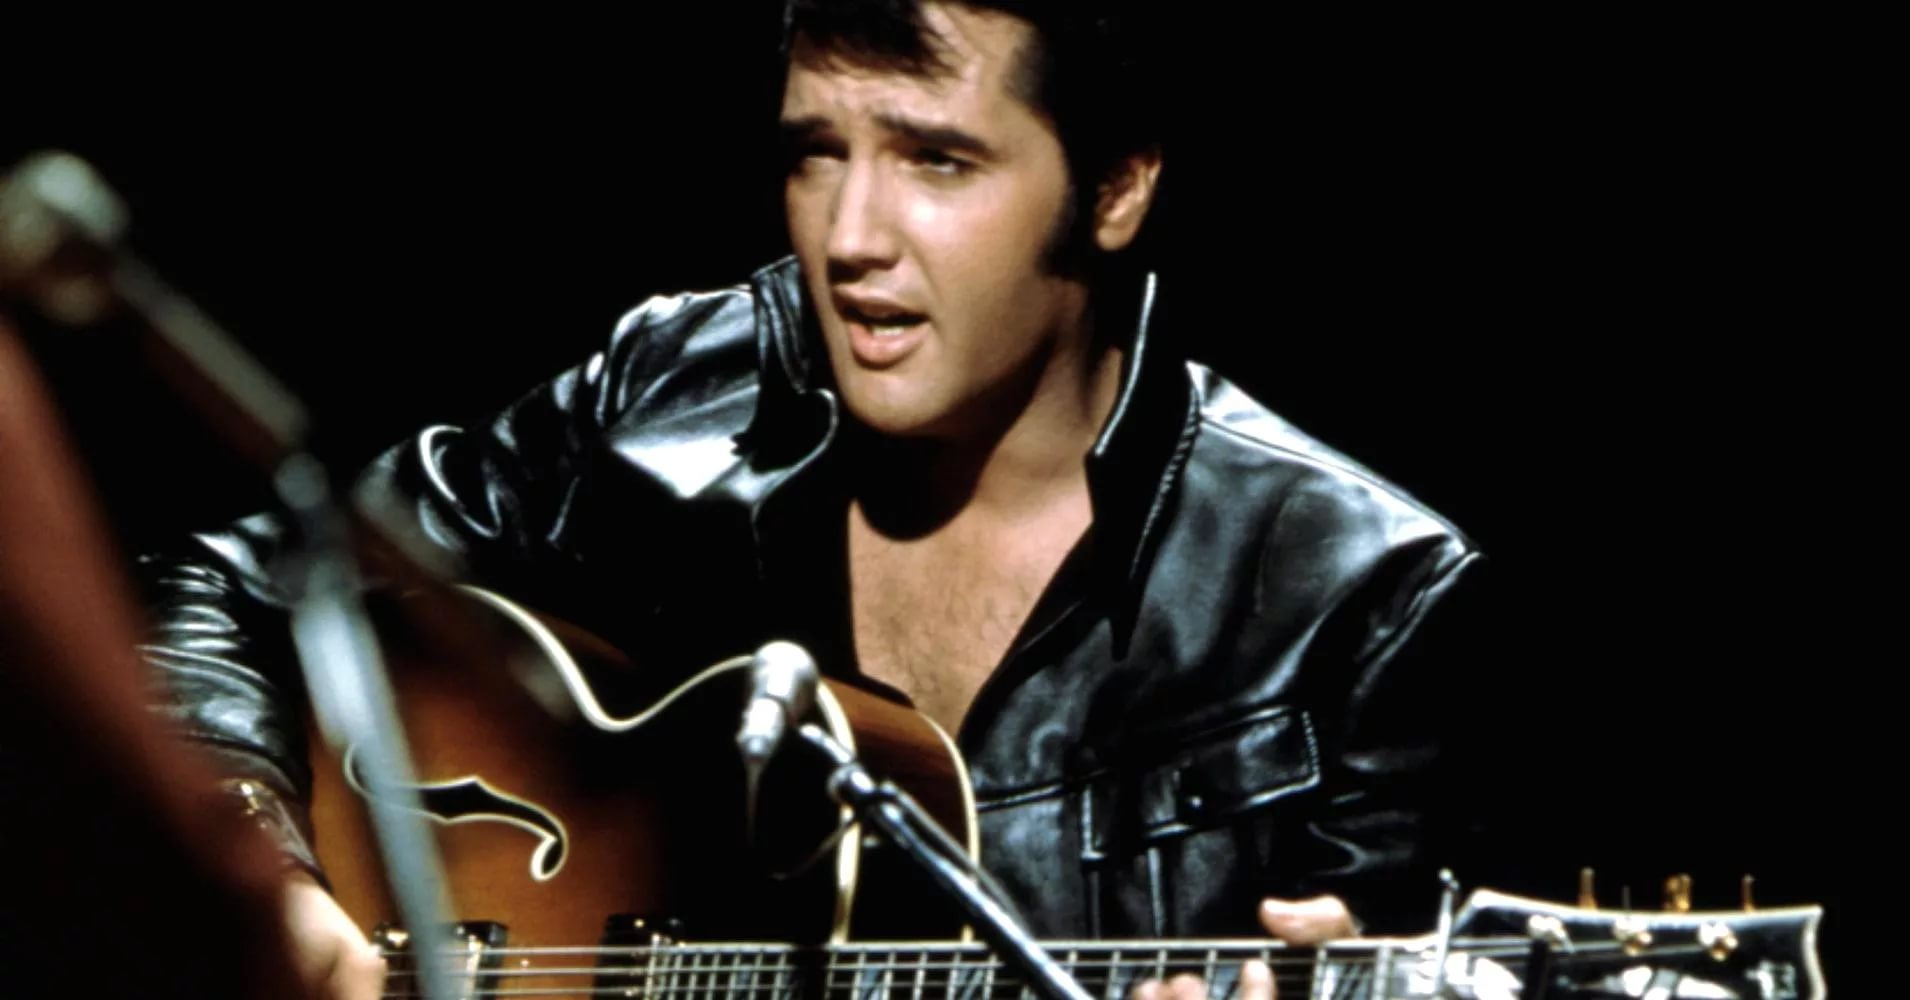 Cool Elvis Presley Wallpapers Images Great Wallpapers Elvis Presley In Leather 2964990 Hd Wallpaper Backgrounds Download